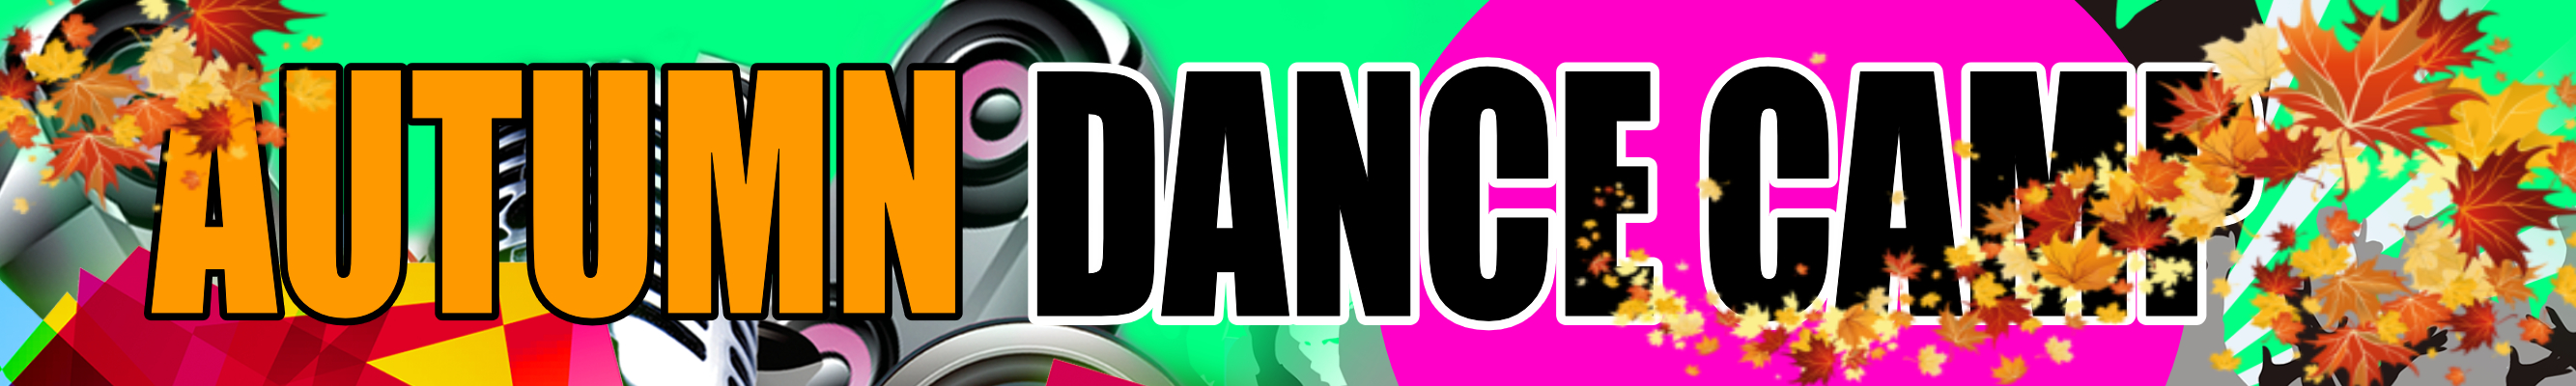 AUTUMN_DANCE_CAMP_banner_400-2000.jpg